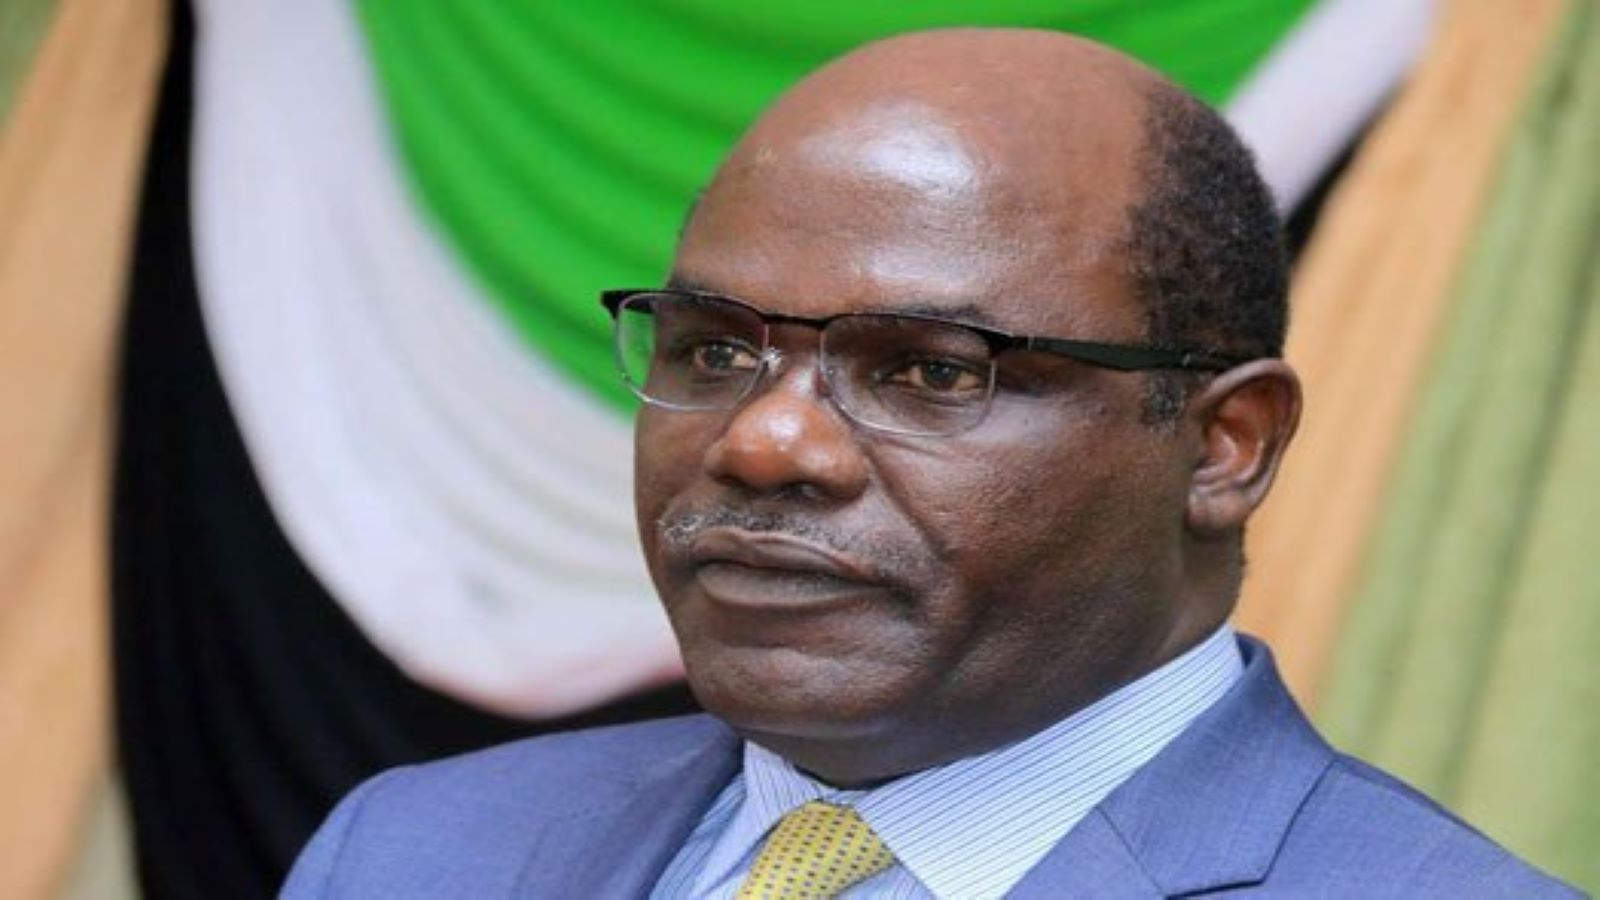 Ugenya Politicians warned of early campaigns